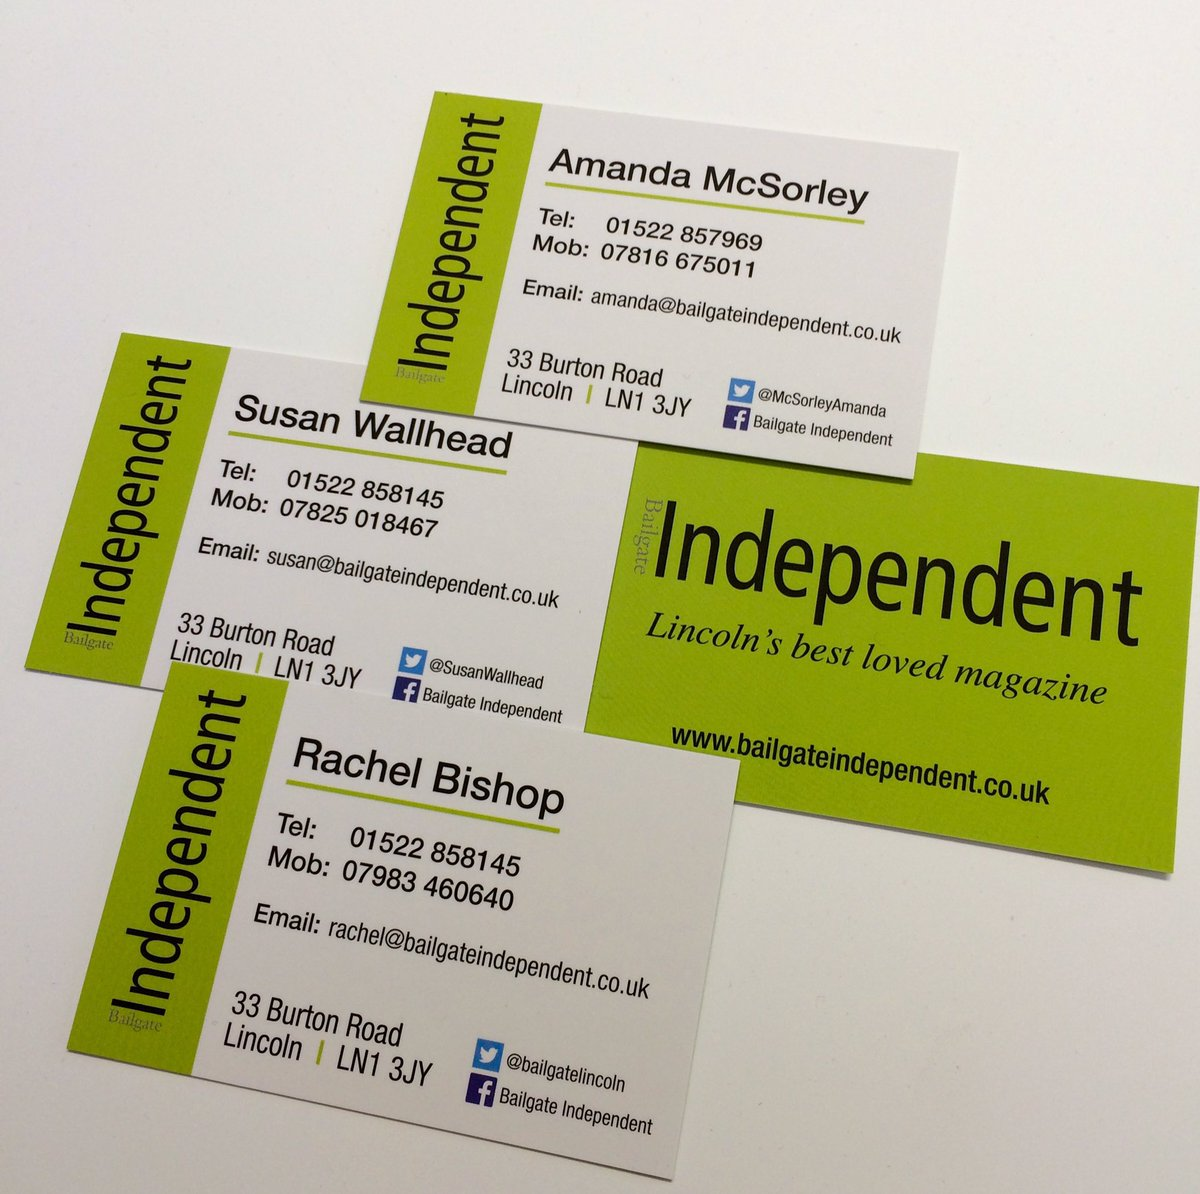 Chris strawson on twitter brand spanking new soft touch laminated chris strawson on twitter brand spanking new soft touch laminated business cards for the lovely ladies at the bailgatelincoln newlook print branding reheart